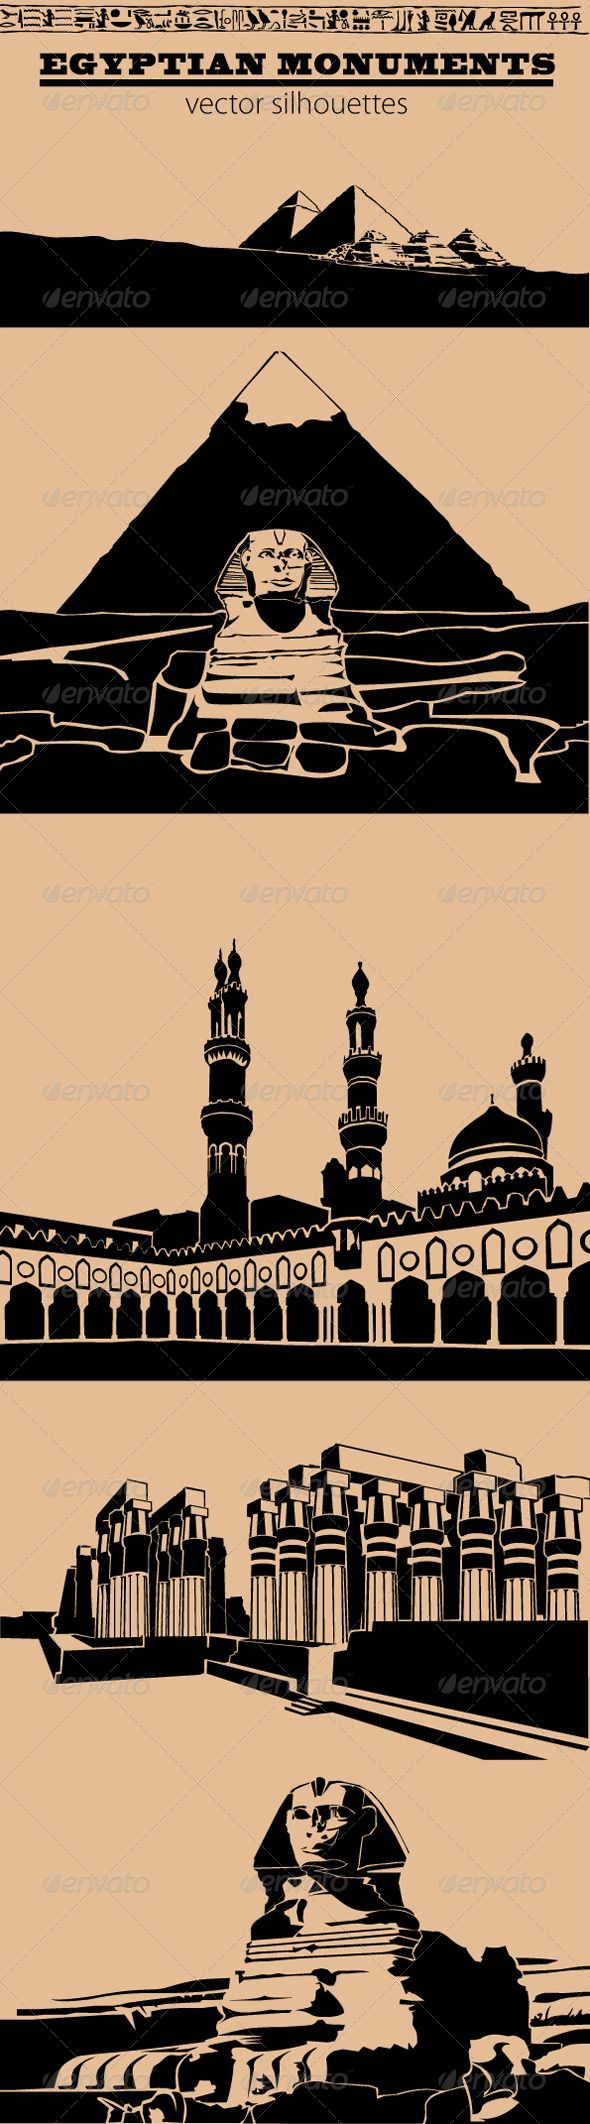 Egyptian Monuments  #GraphicRiver         Egyptian Monuments  	 Vector Silhouettes  	 - View of the desert, the Valley of the Kings and the pyramids  	 - The Great Pyramid of Giza  	 - The Al-Azhar Mosque  	 - Luxor Temple  	 - The Sphinx   Contents:  	 1 .AI file for illustrator cs2  	 1 .EPS file for illustrator 10  	 6 high definition PNG files with transparency     Created: 17October13 GraphicsFilesIncluded: TransparentPNG #VectorEPS #AIIllustrator Layered: Yes MinimumAdobeCSVersion: CS…